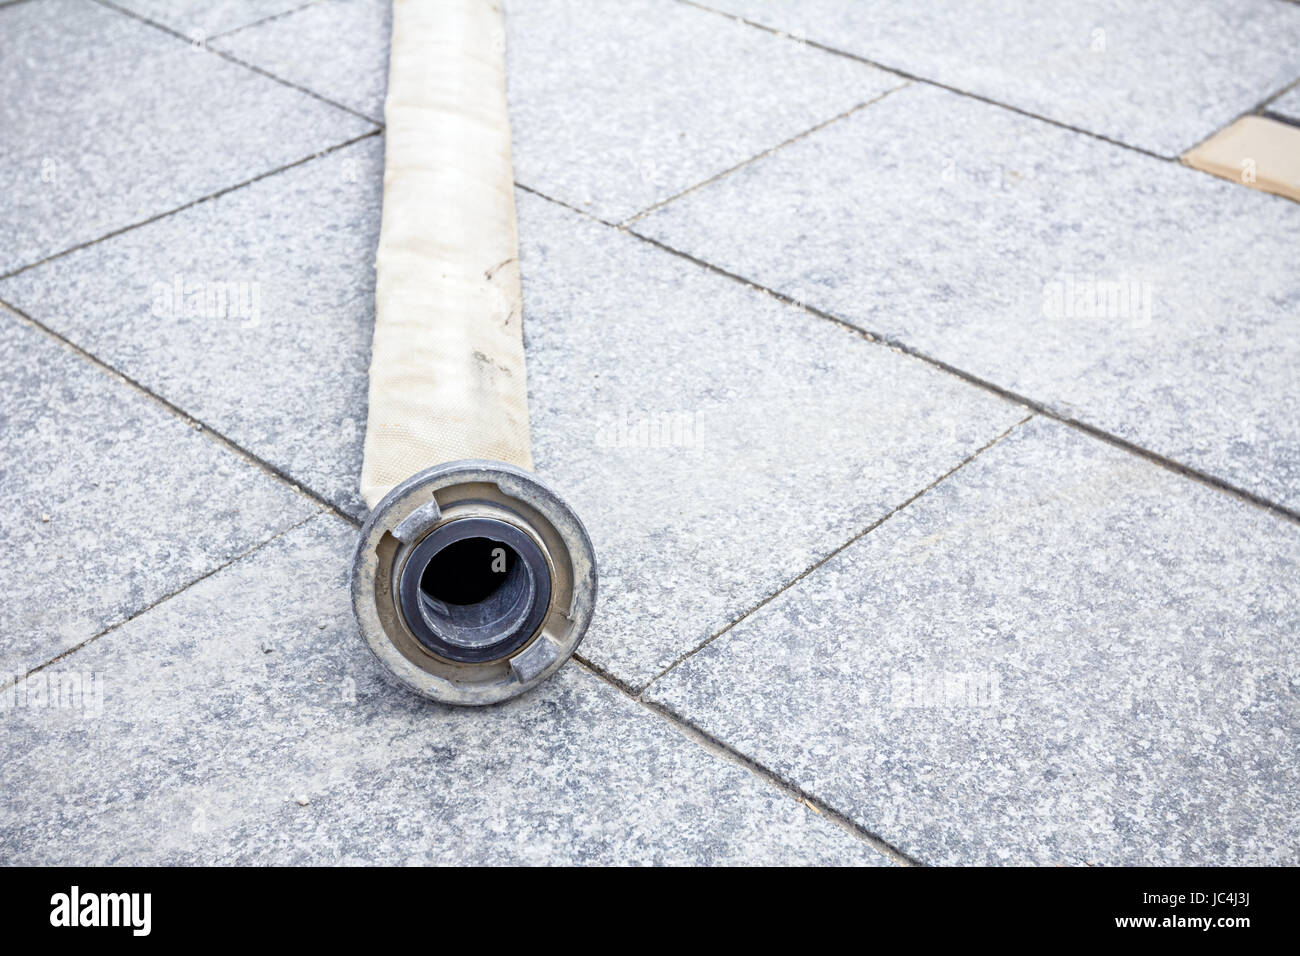 Front view on clutch of fire hose on tiled background. - Stock Image